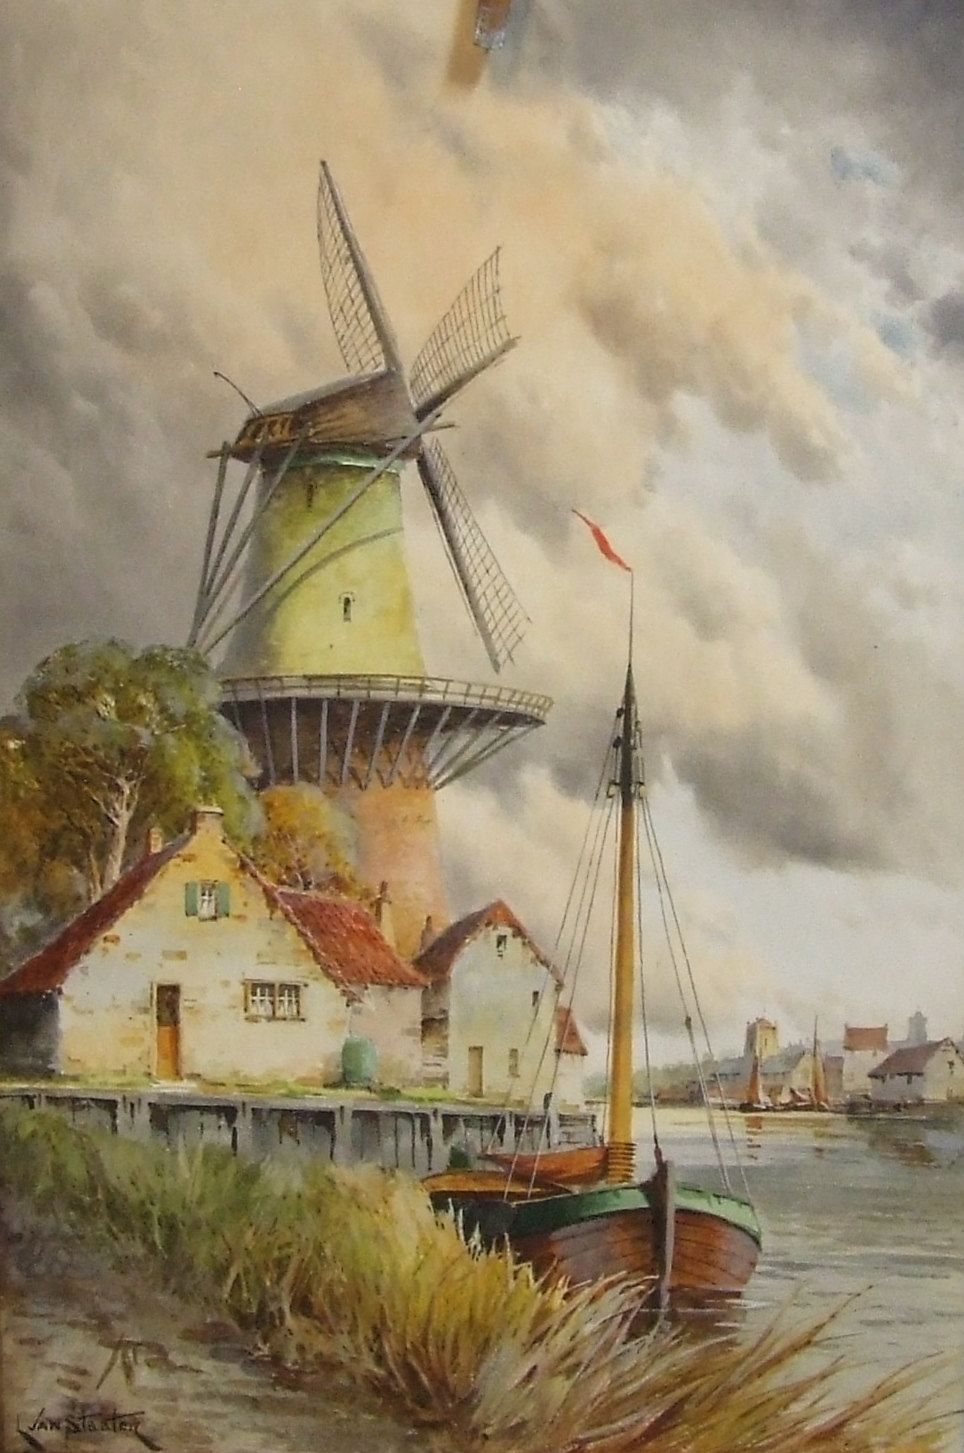 Original watercolour painting Louis van Staaten Dutch ... Dutch Windmill Painting